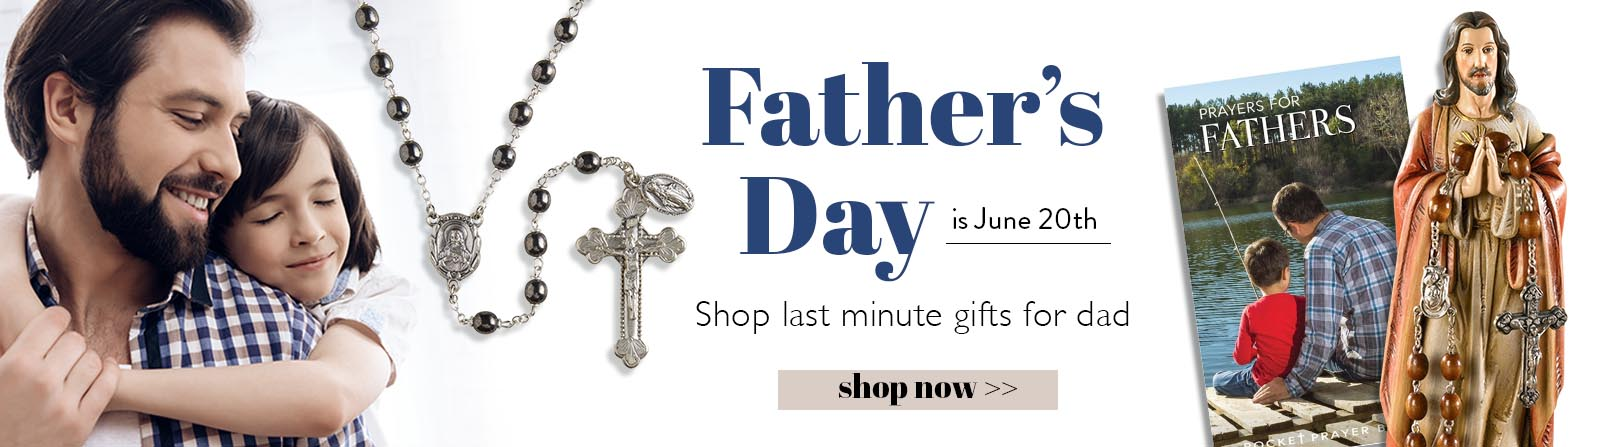 Father's Day is June 20. Shop last minute gifts for dad. - Shop now!